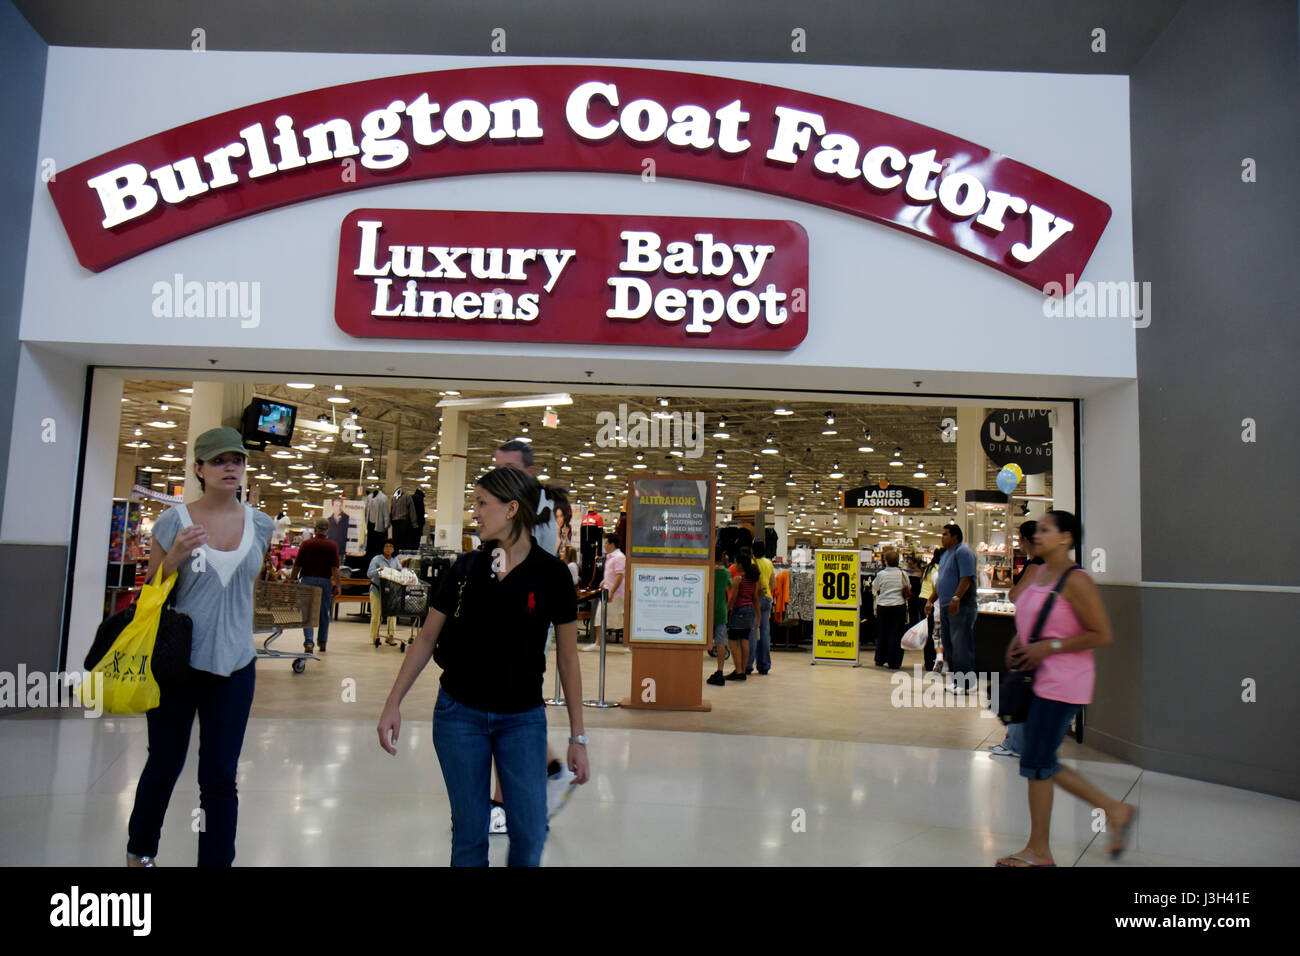 Miami Florida Dolphin Mall Burlington Coat Factory outlet store woman women  shop shopper shopping bag buy sell retail clothing l ee728643ae1fa